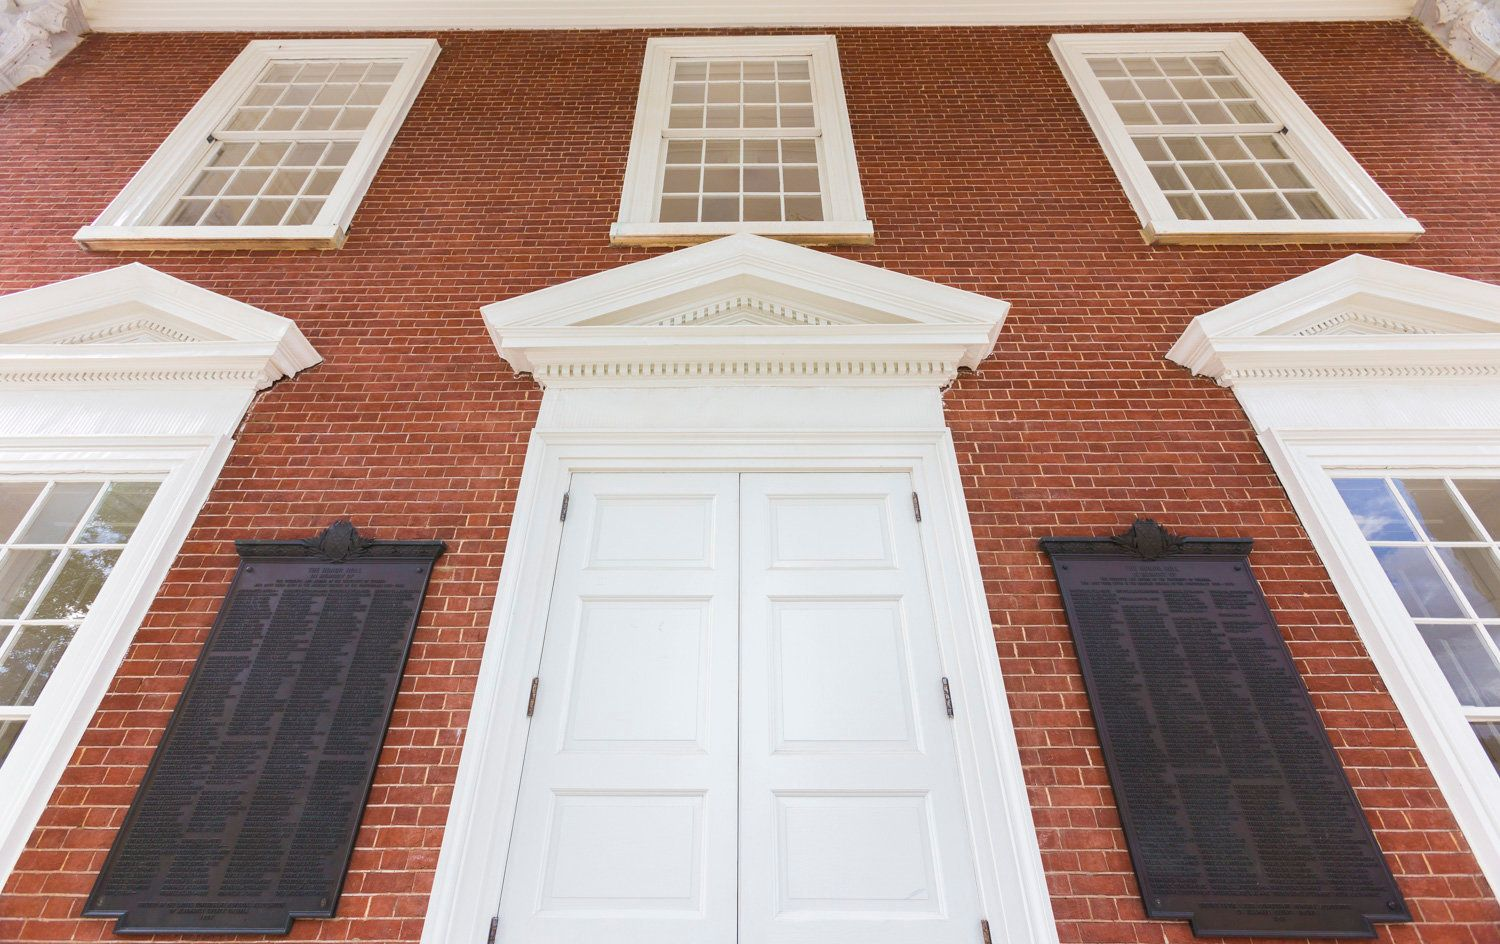 The board of visitors voted to remove the plaques commemorating former University of Virginia students who died fighting for